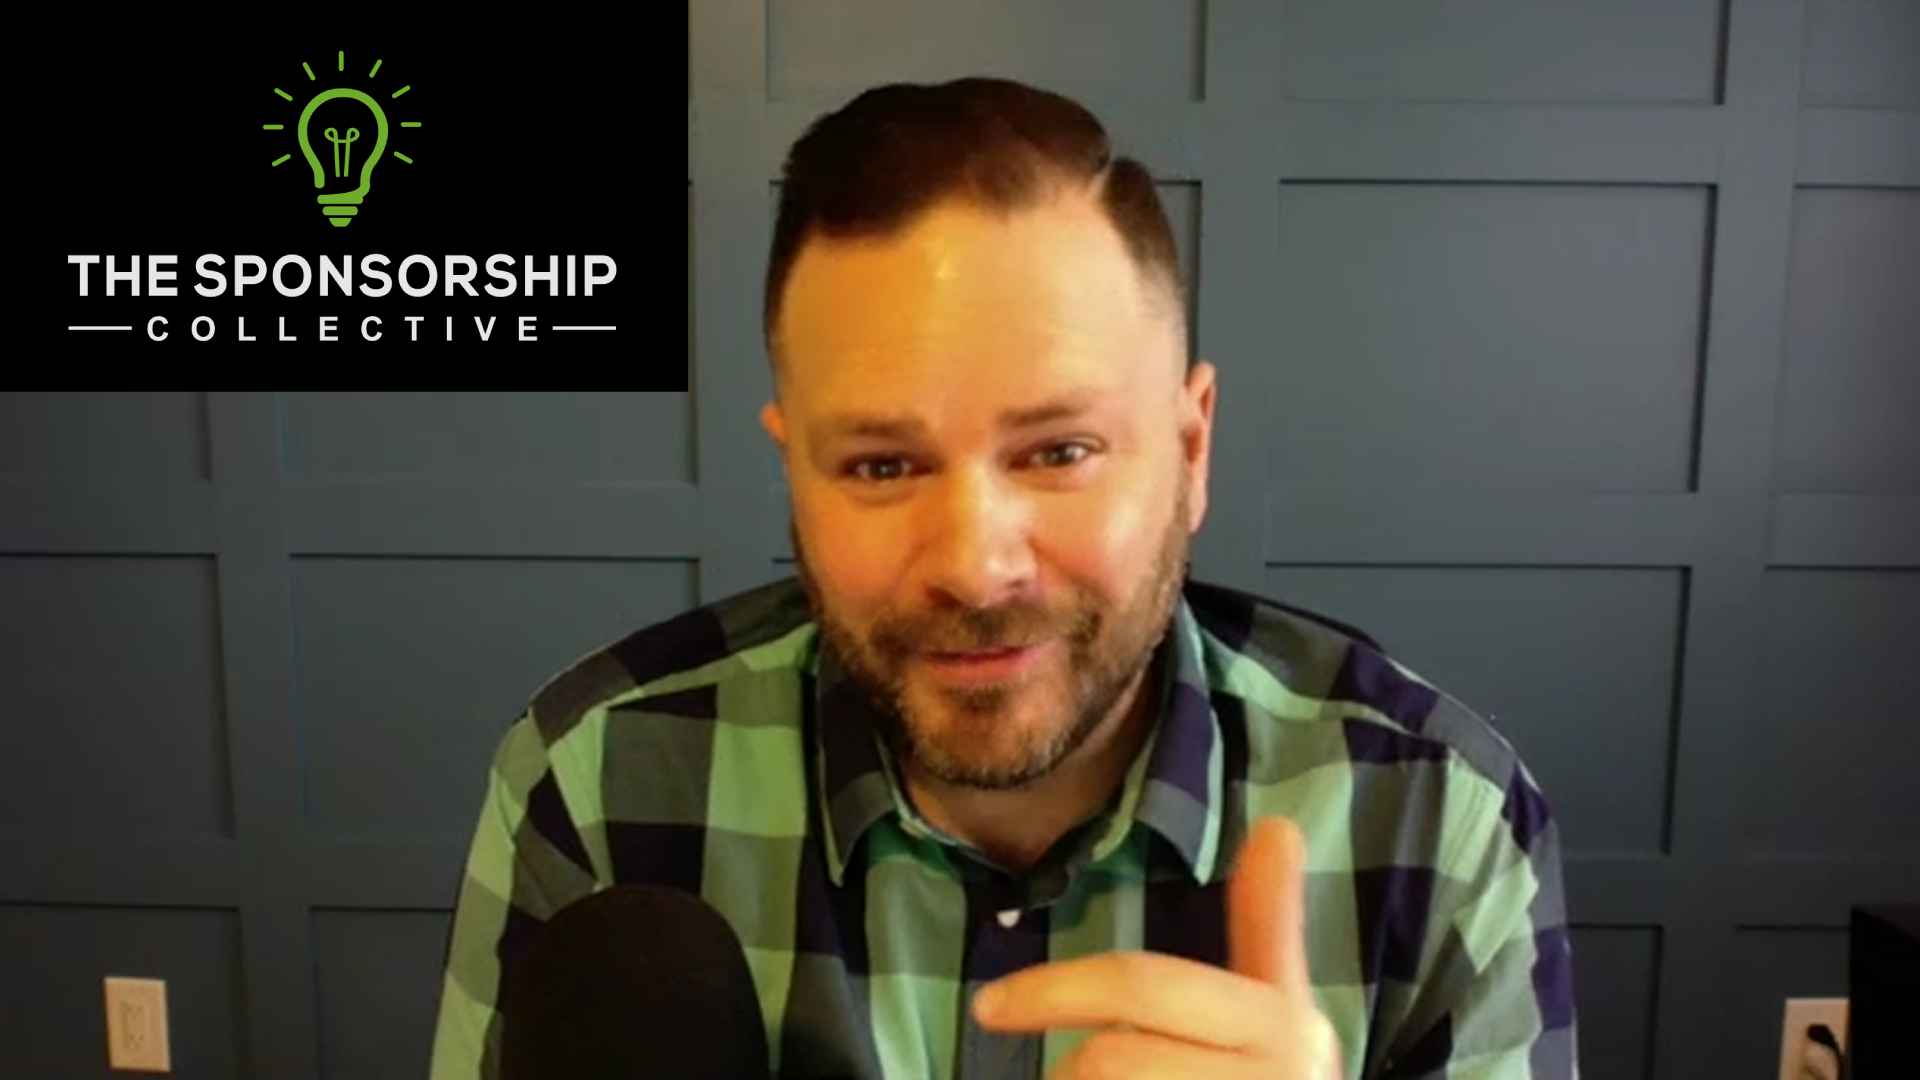 Interview with The Sponsorship Collective